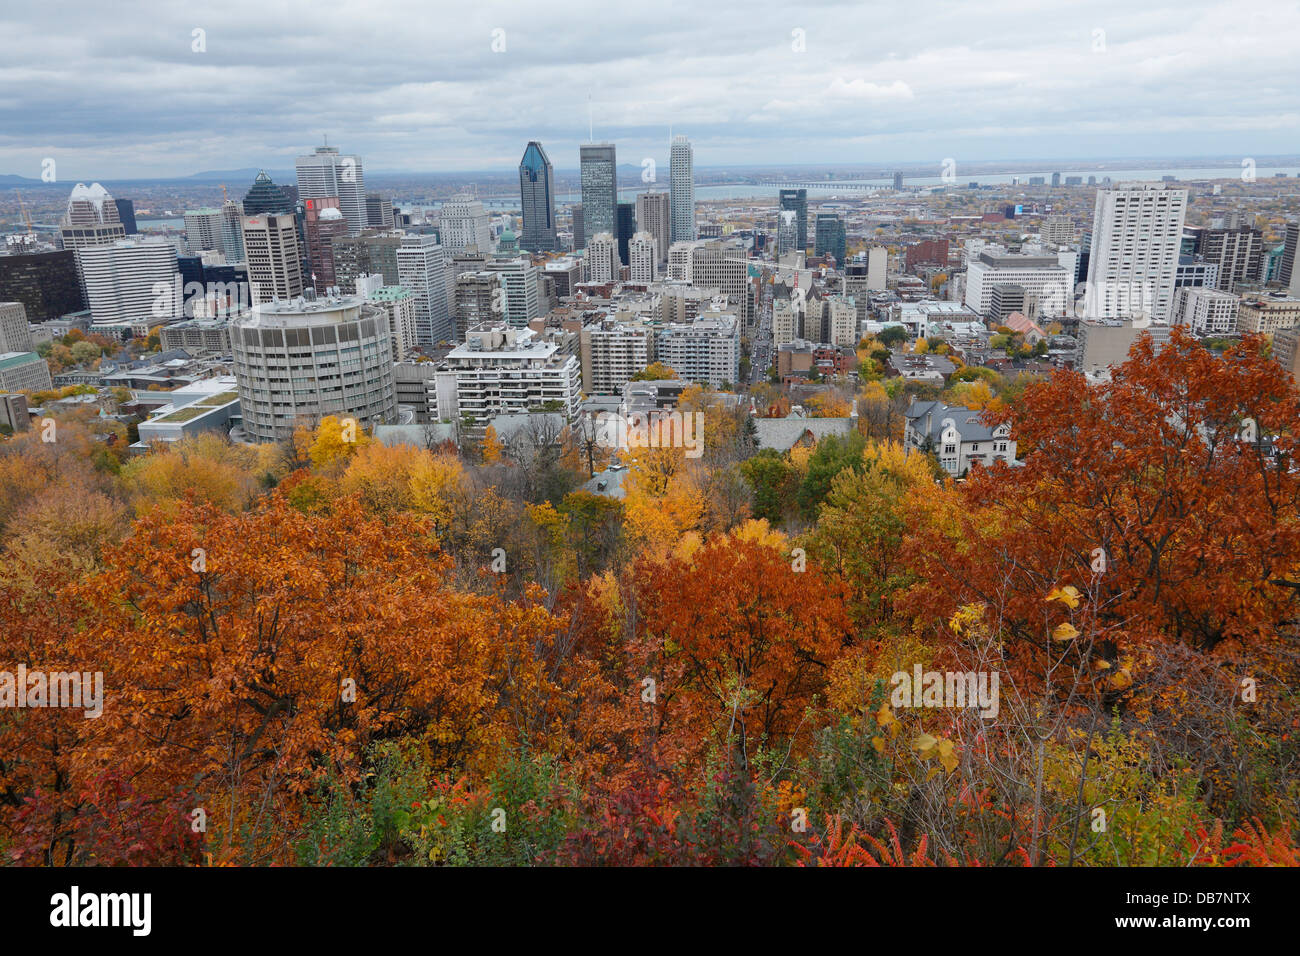 View of the city - Stock Image